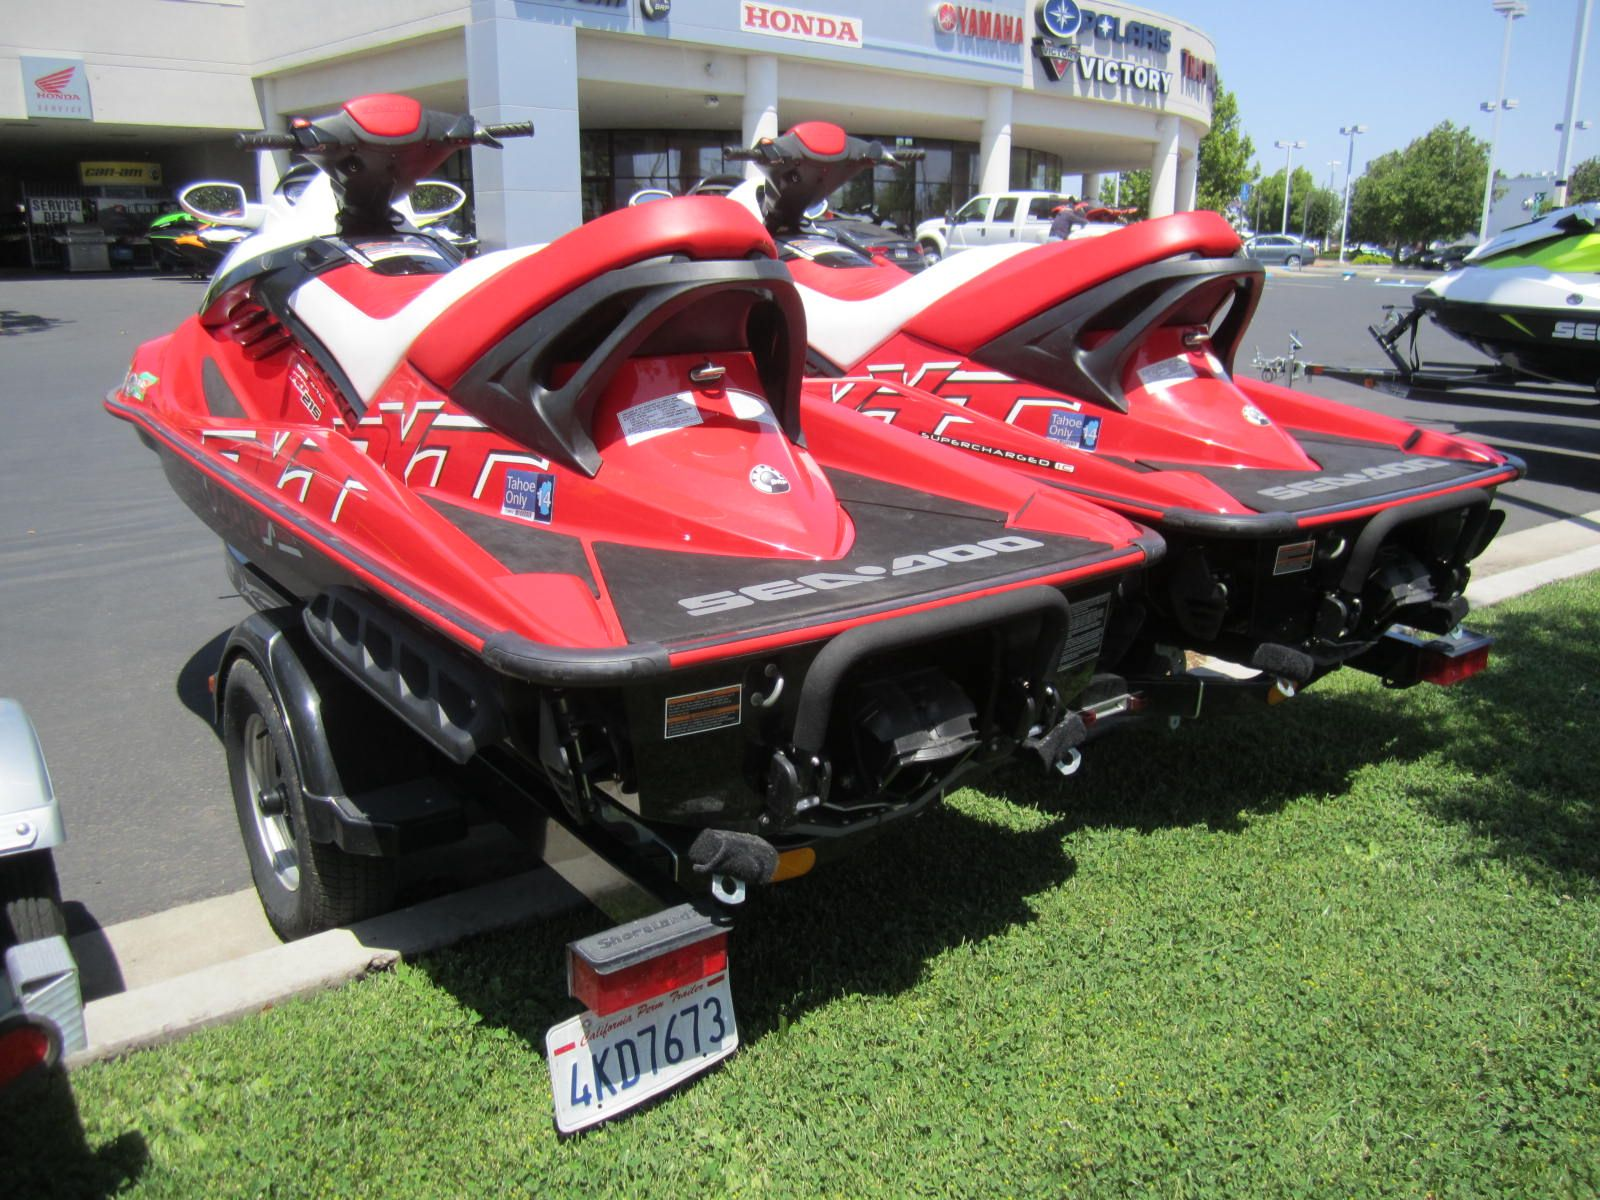 Pair Of Red Seadoo Skis Mounted On A Double Trailer And Ready To Go Personal Watercraft Seadoo Water Crafts